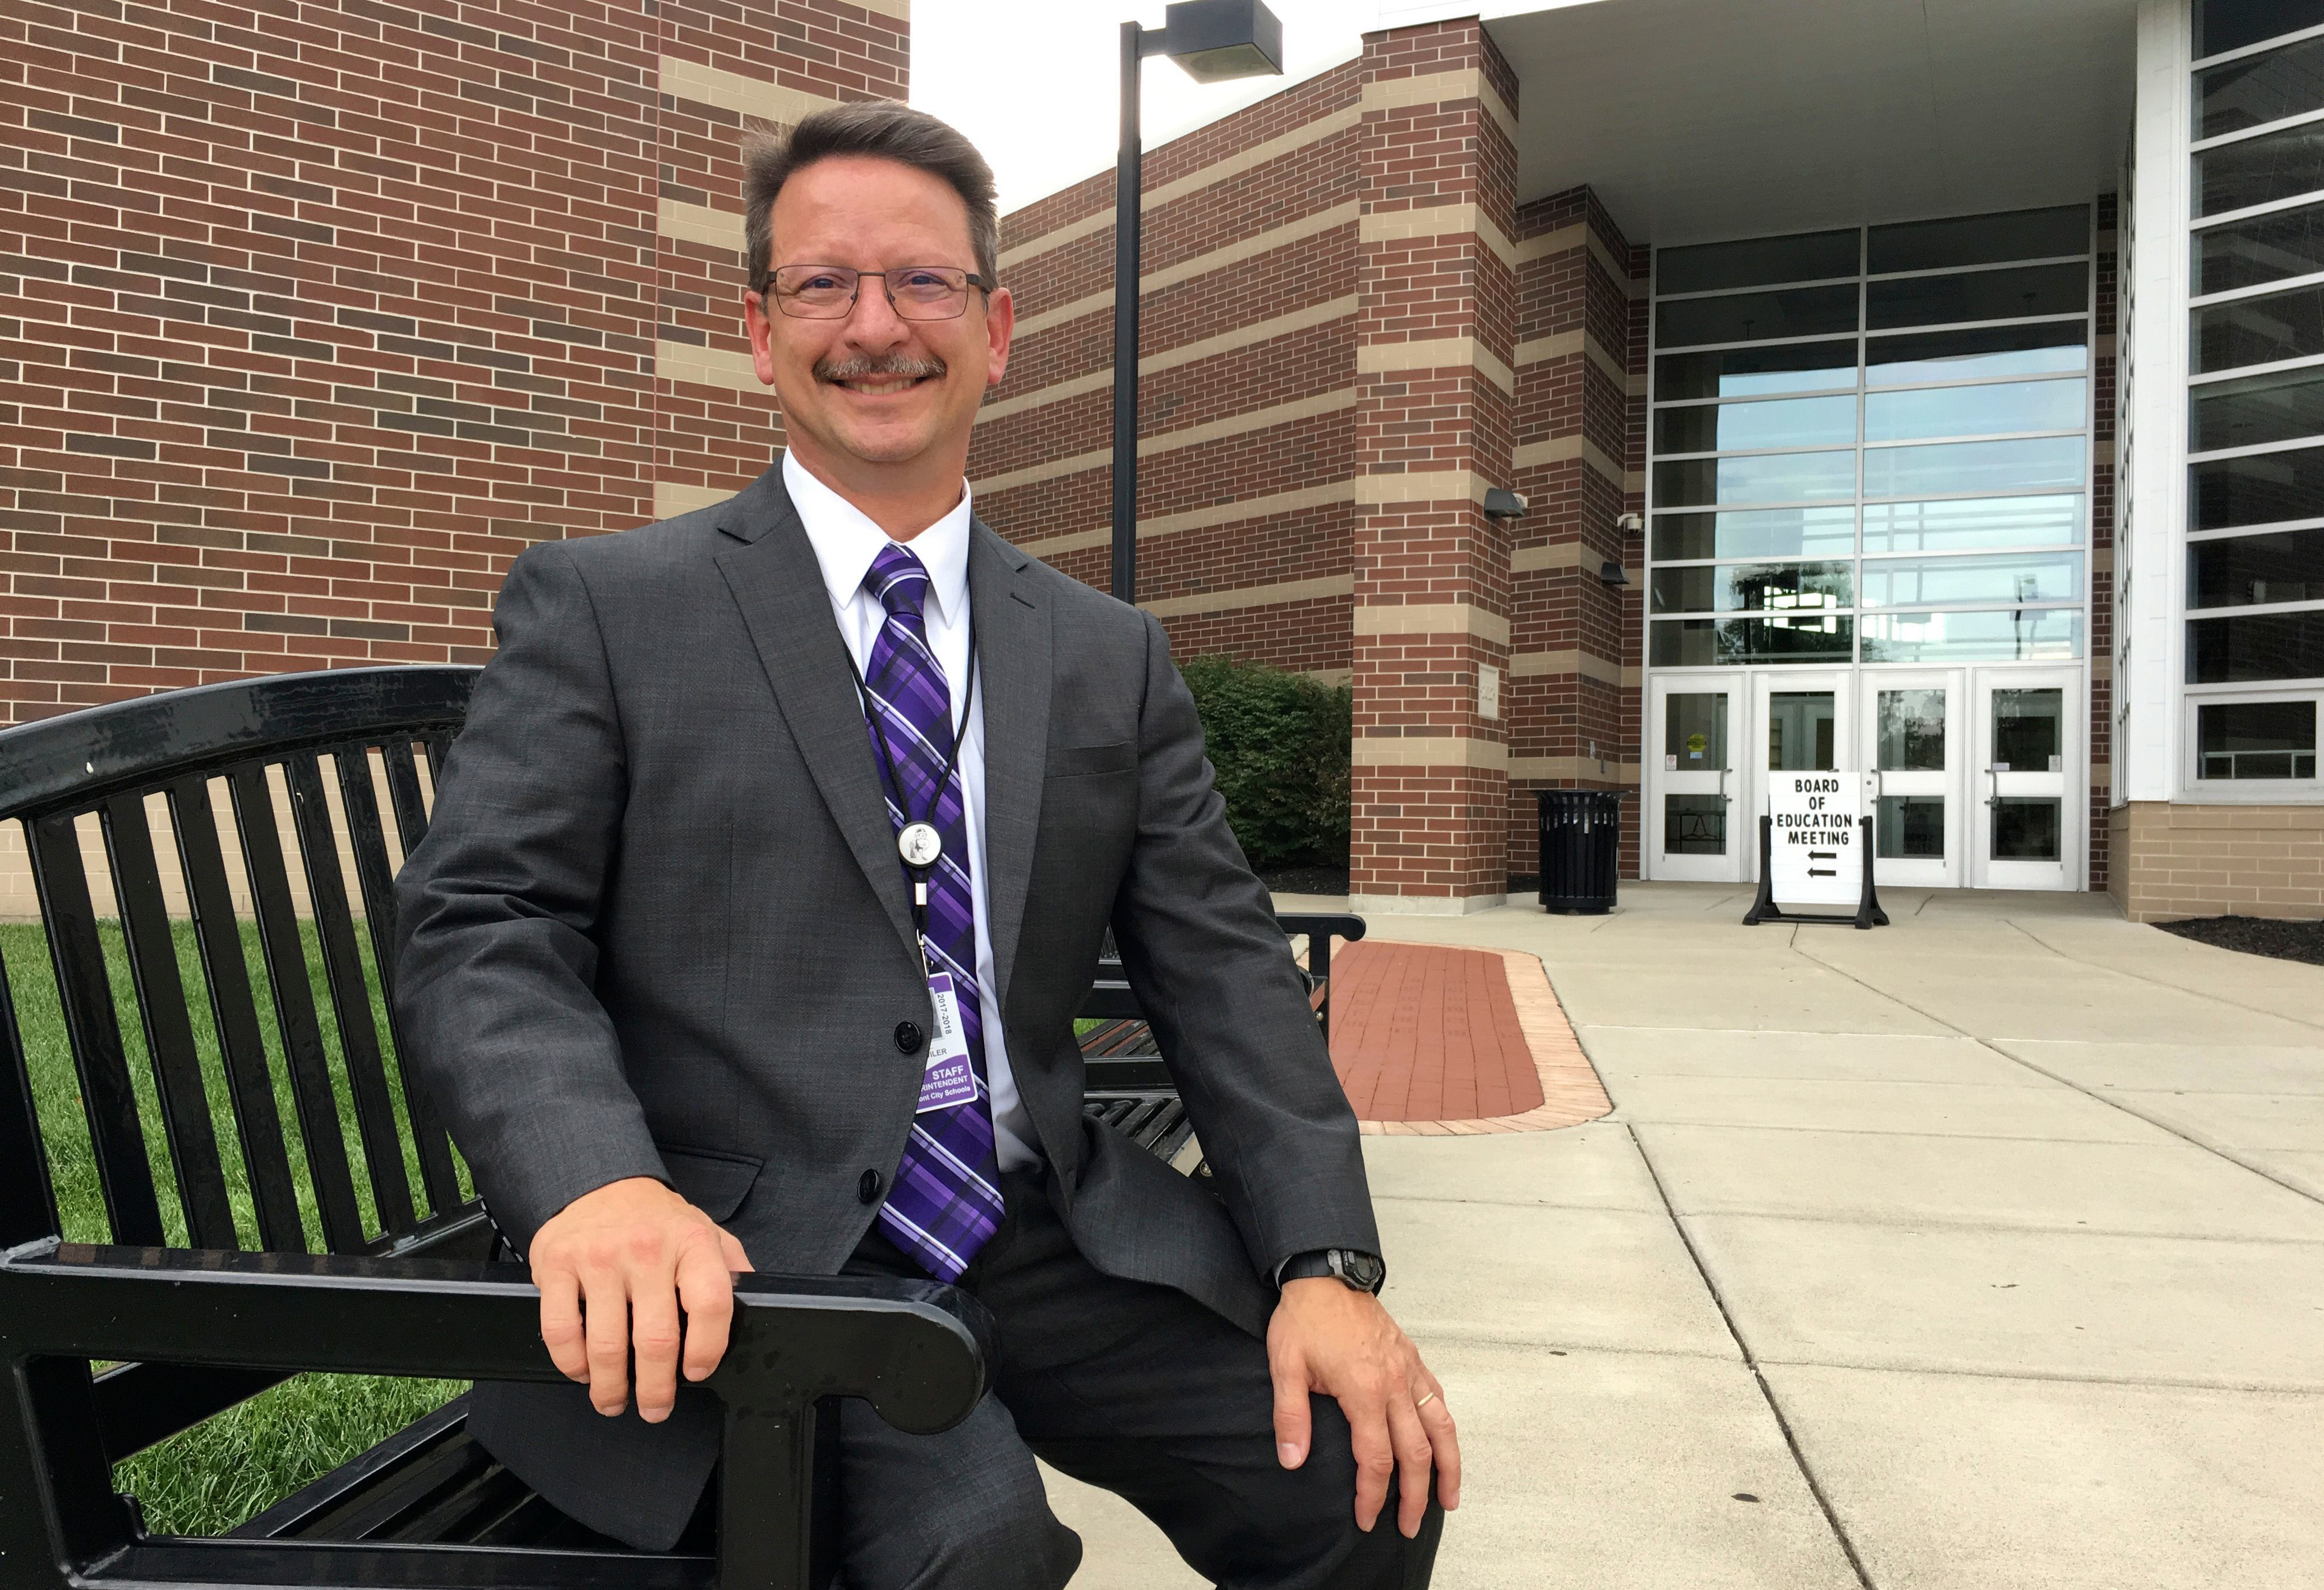 Jon Detwiler, Fremont City Schools superintendent, said the district will be hiring a new treasurer at its next school board meeting.